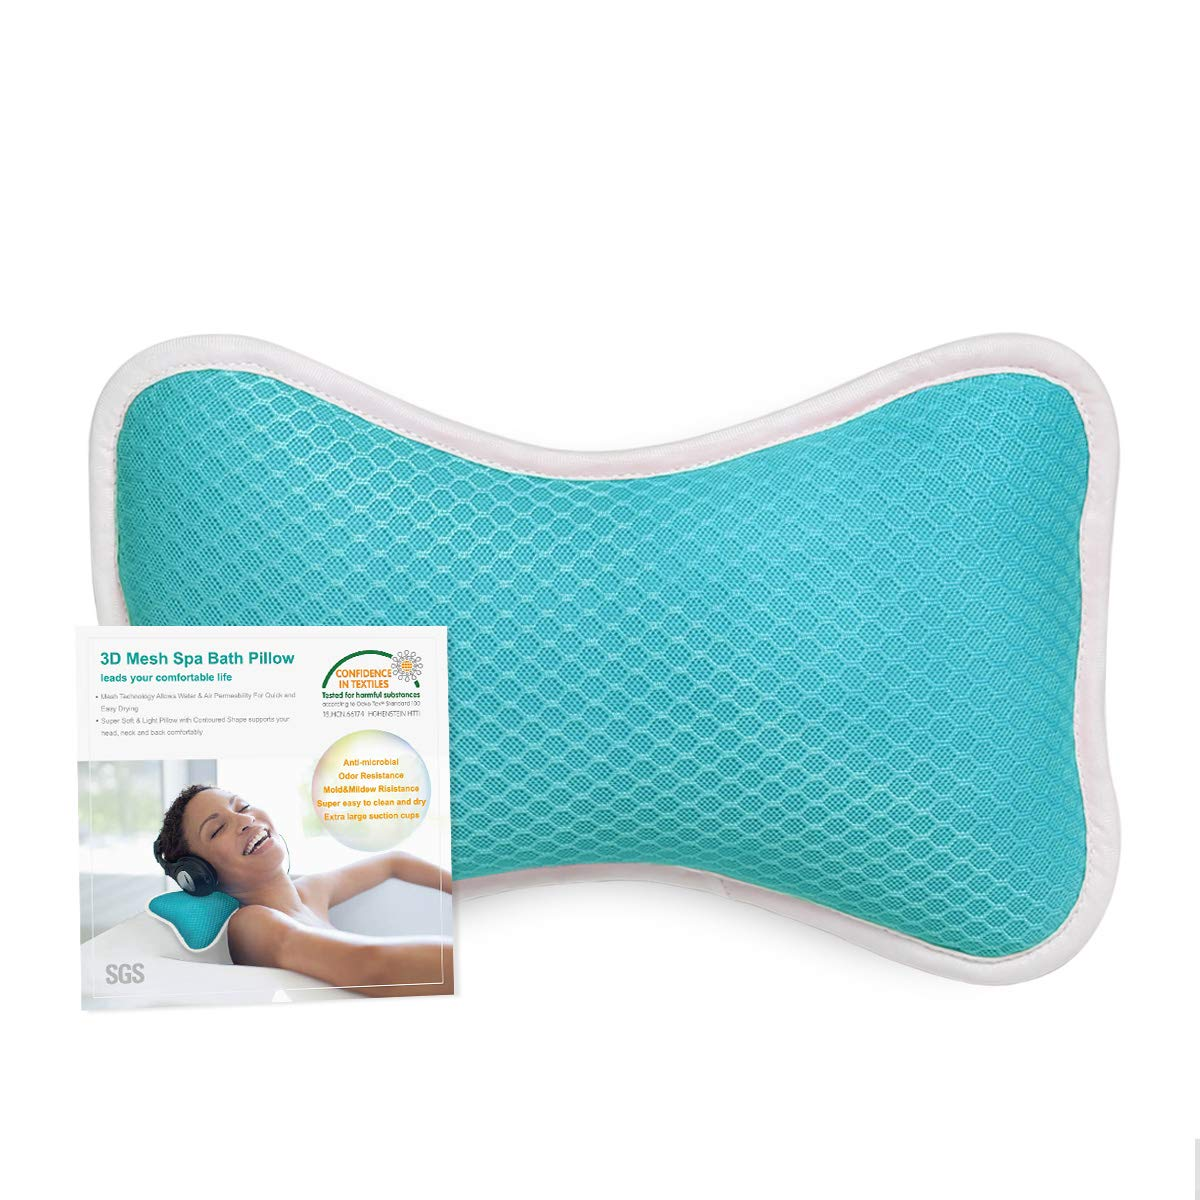 Comfortable Bath Pillow with Suction Cups, Supports Neck and Shoulders Home Spa Pillows for Bathtub, Hot Tub, Jacuzzi, Bathtub Head Rest Pillow Relax & Comfy - Blue : Beauty